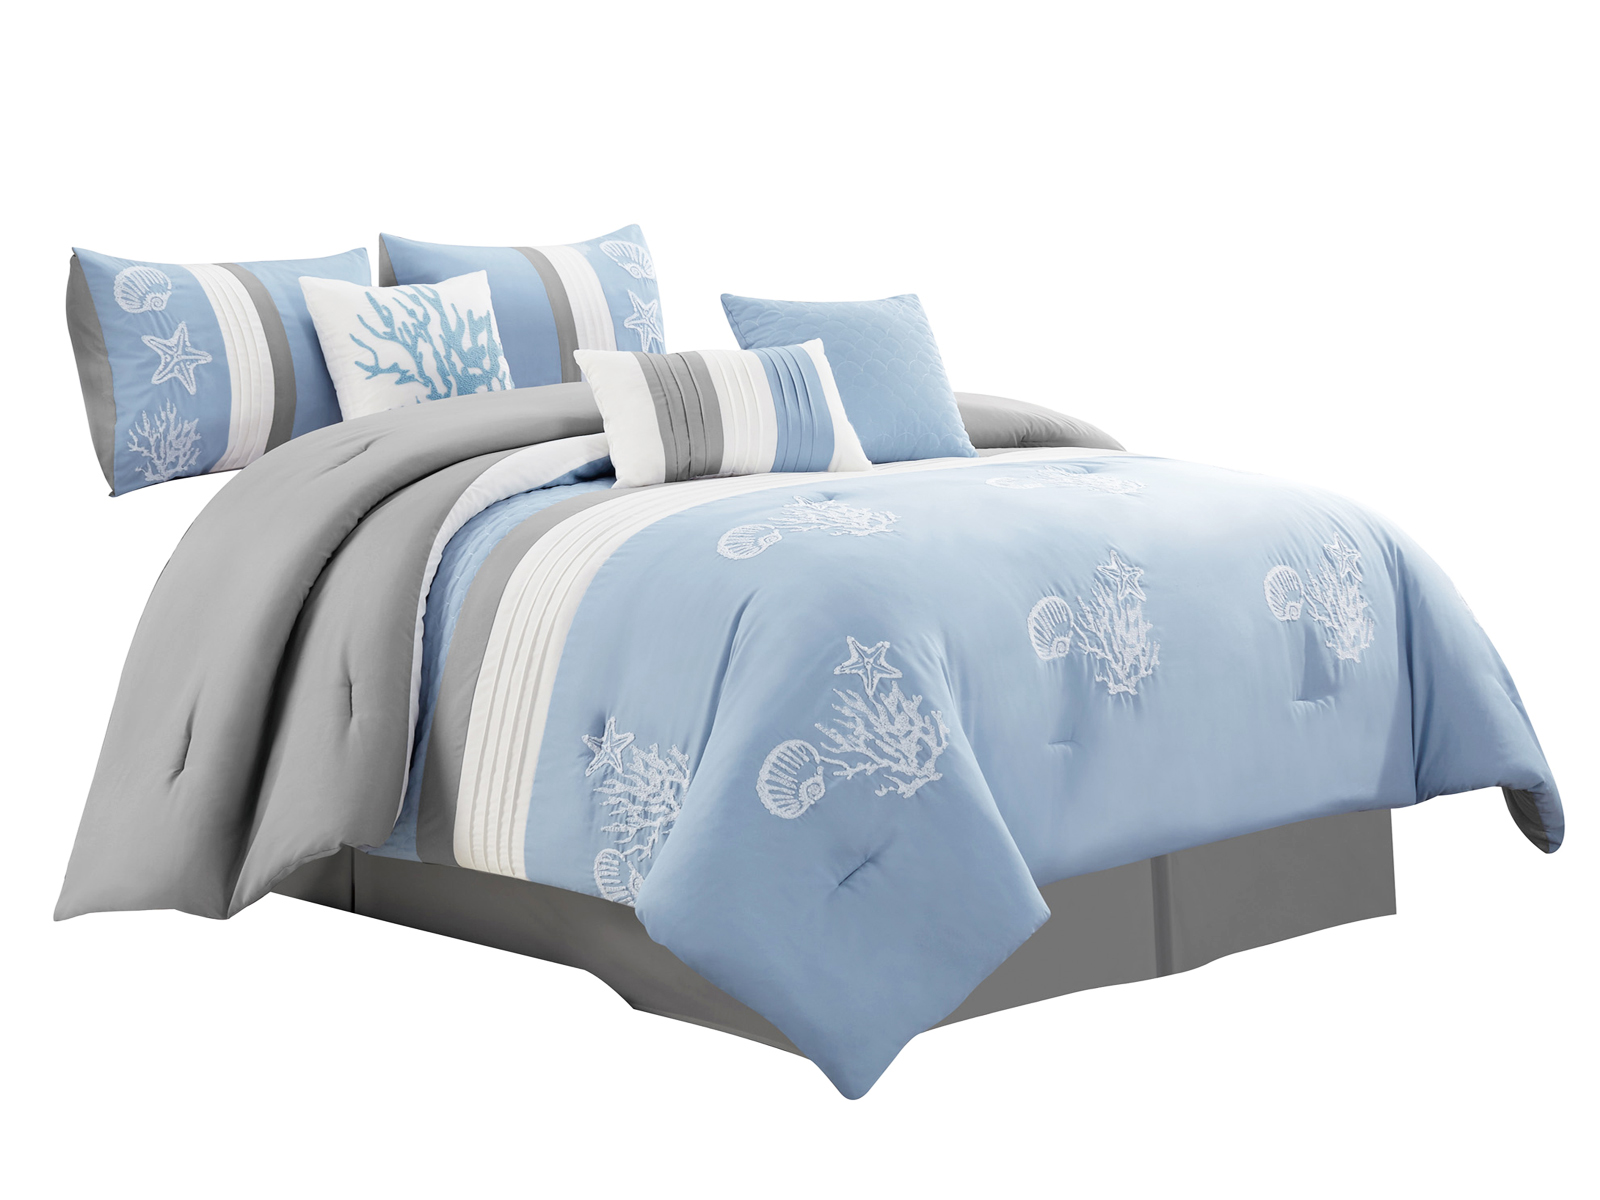 Queen King Bed Blue Brown Coral Seashells Embroidered 7 pc Comforter Set Bedding